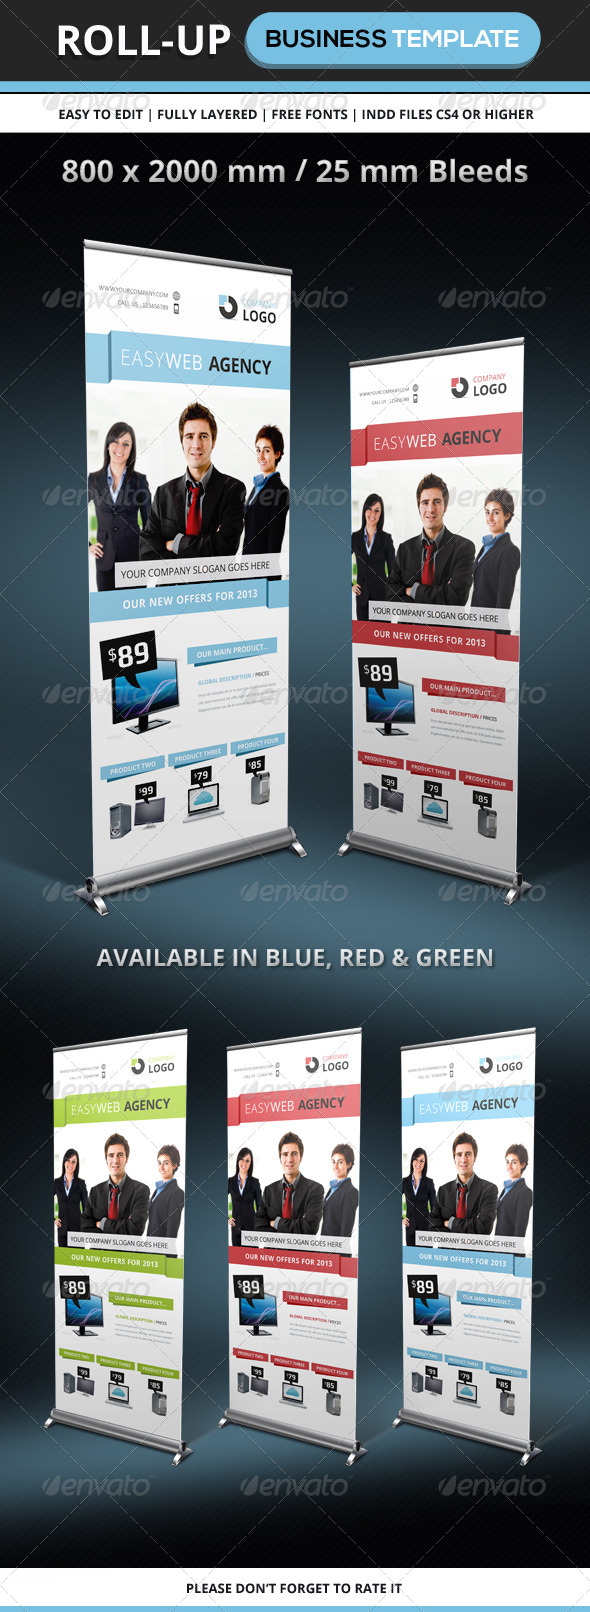 Corporate & Business Roll-up Template